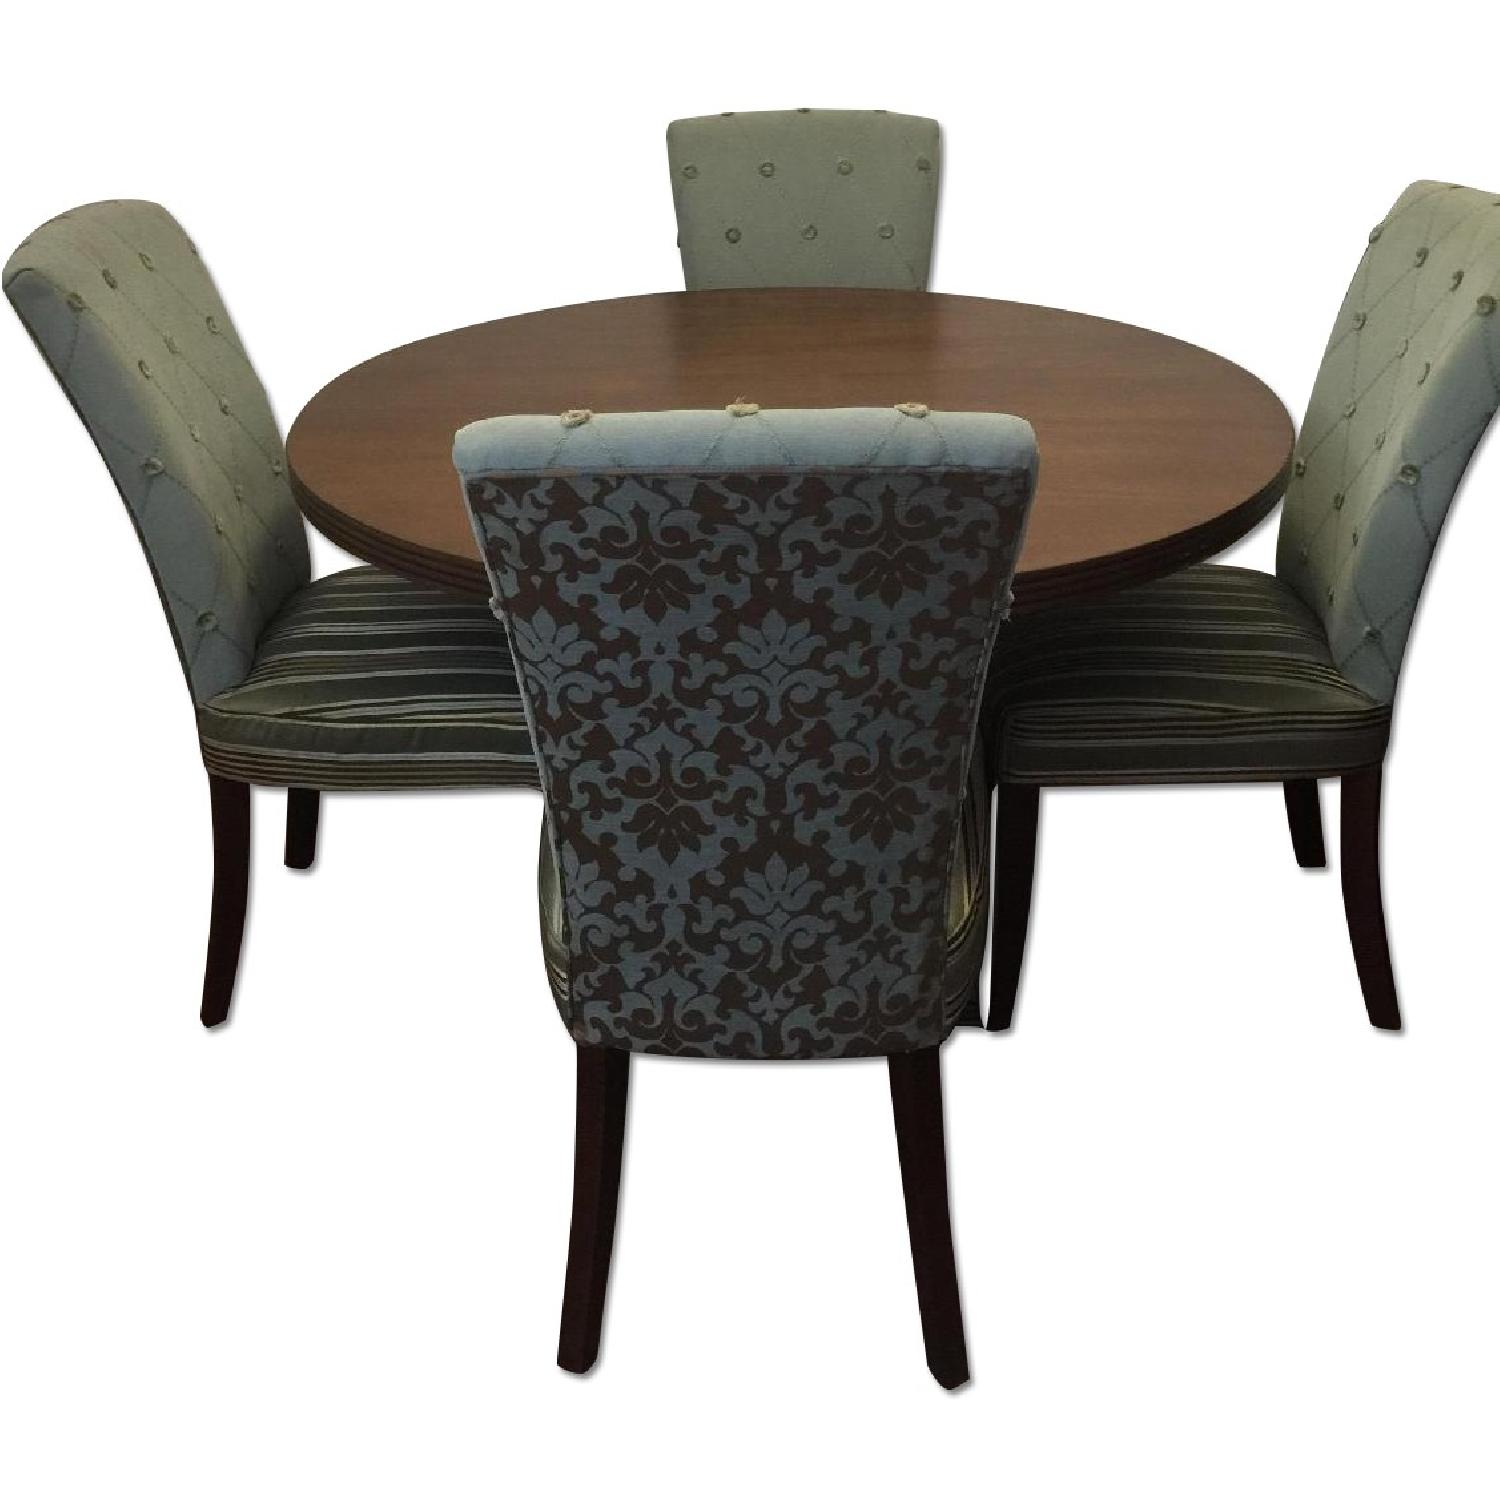 aptdeco used pier 1 dining room table and chairs for